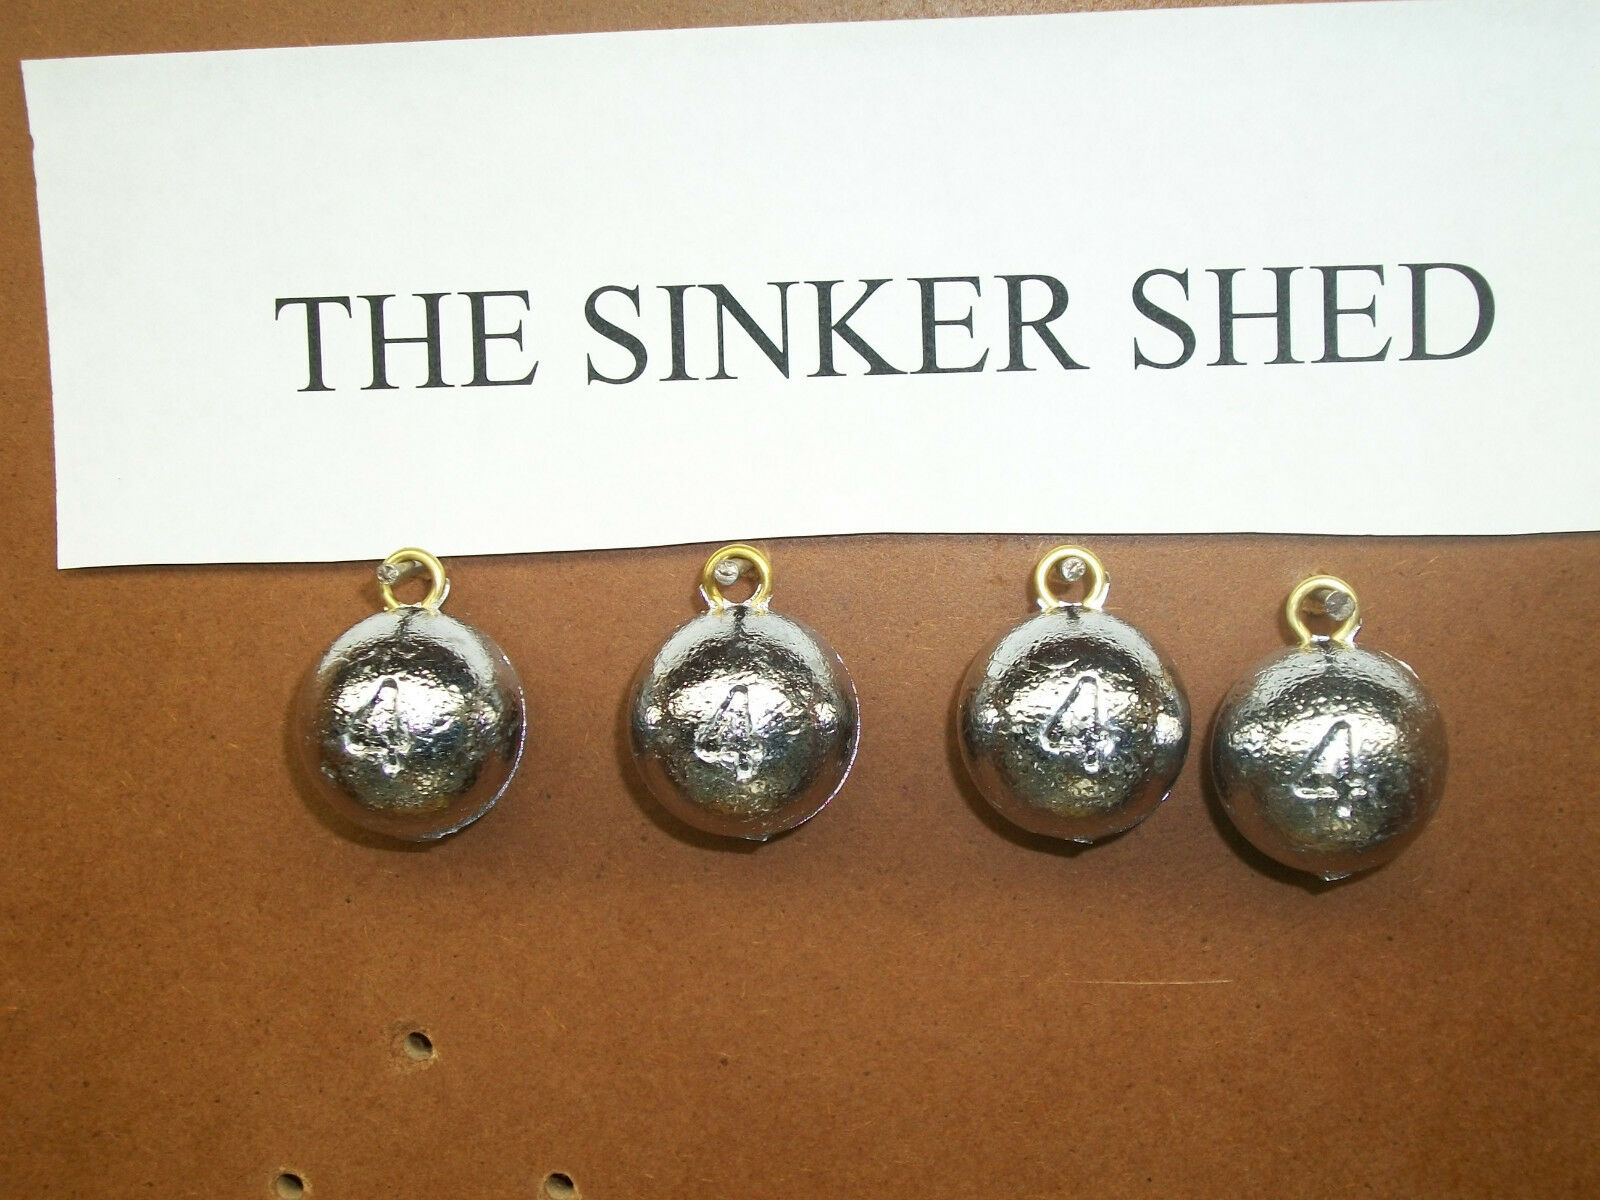 4 oz cannon ball sinkers - choose quantity 12 25 50 100 200 - FREE SHIPPING